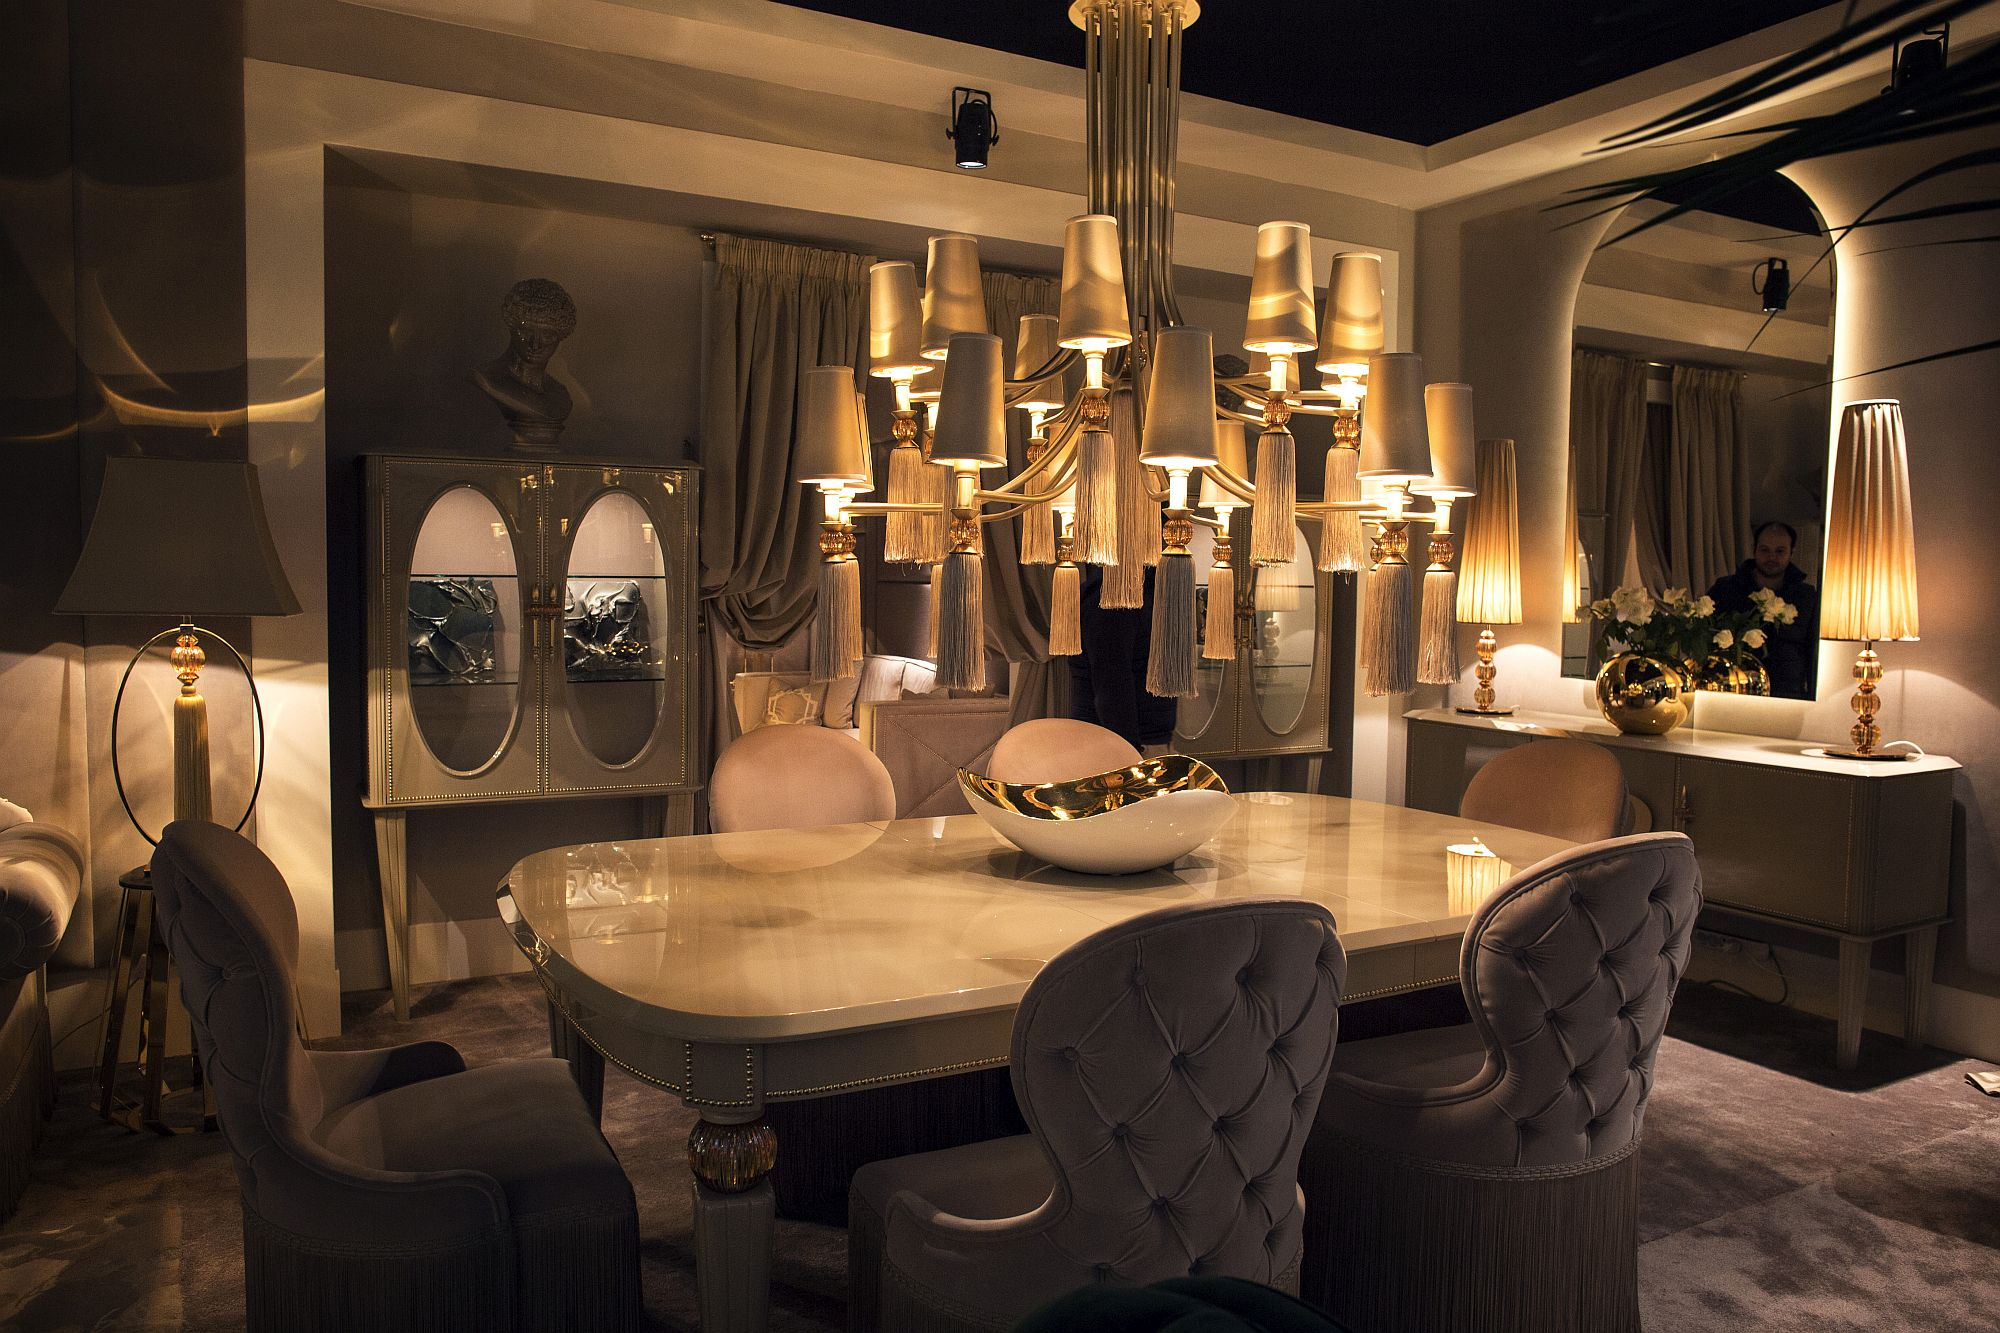 Luxurious Dining Rooms Luxury All The Way 15 Awesome Dining Rooms Fit For Royalty